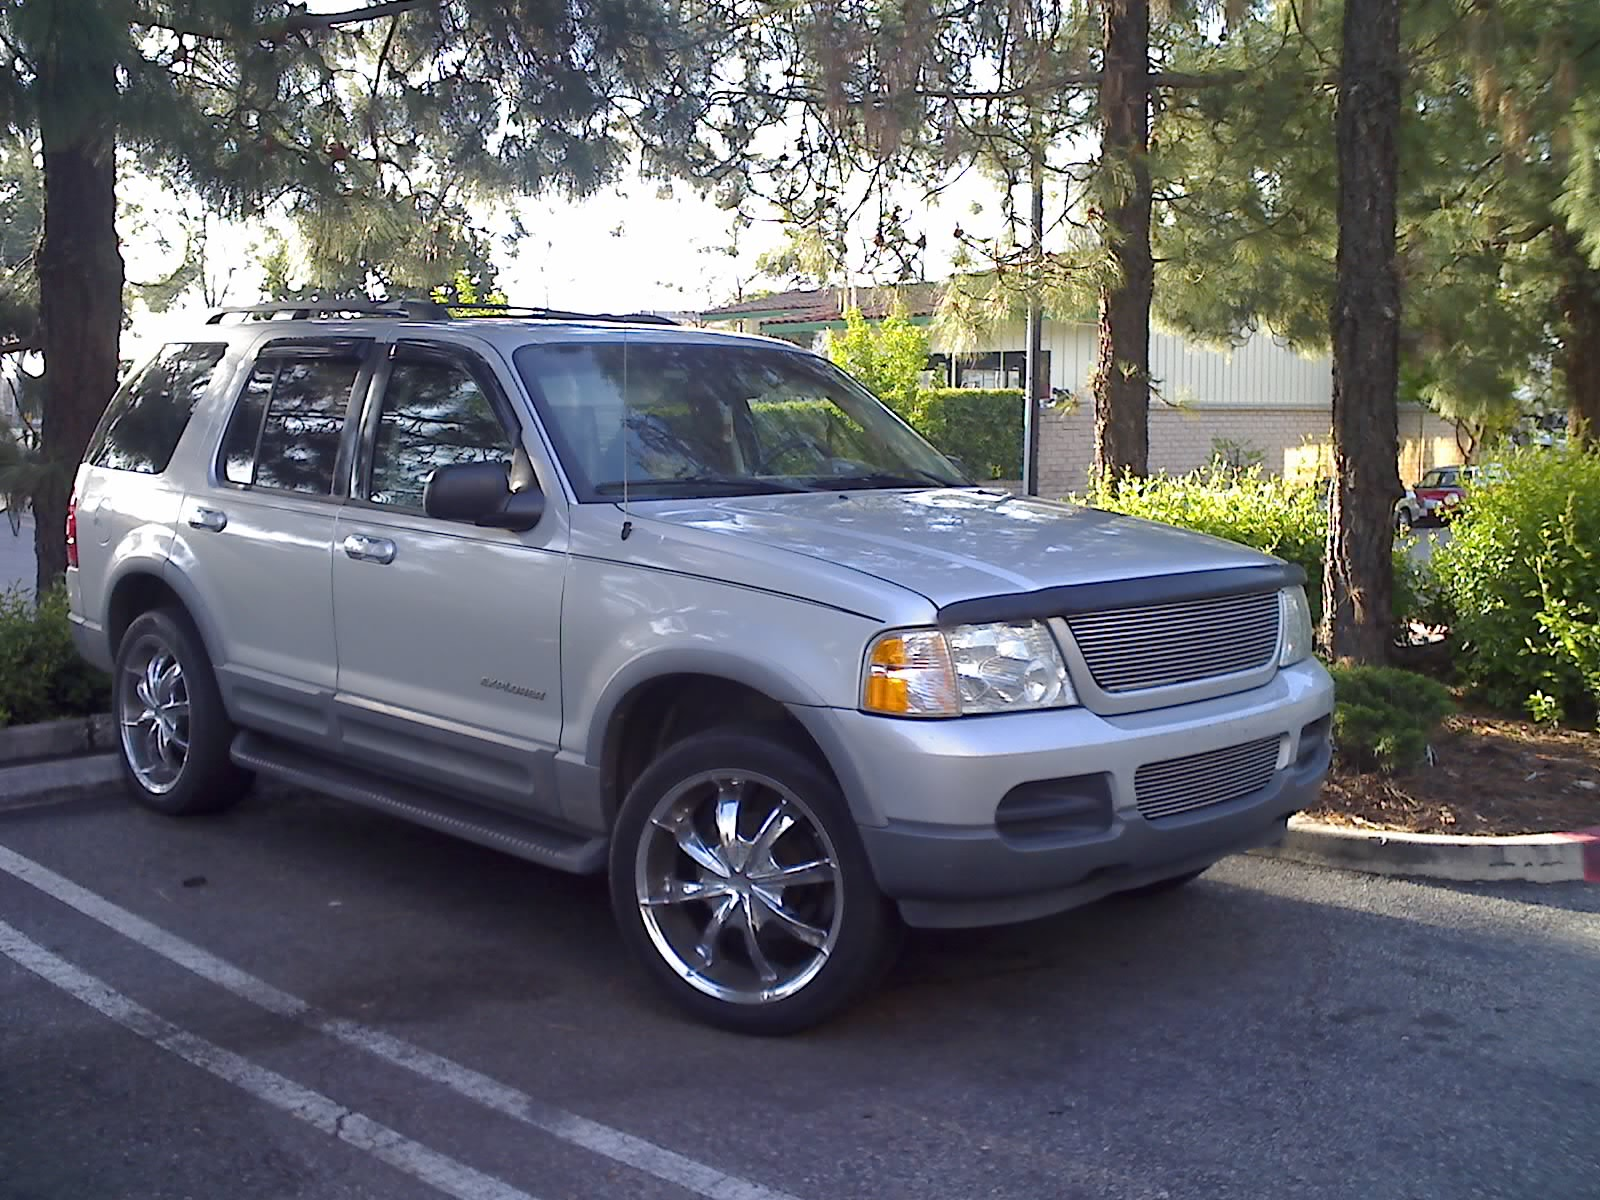 2004 Ford Explorer XLT V6 picture